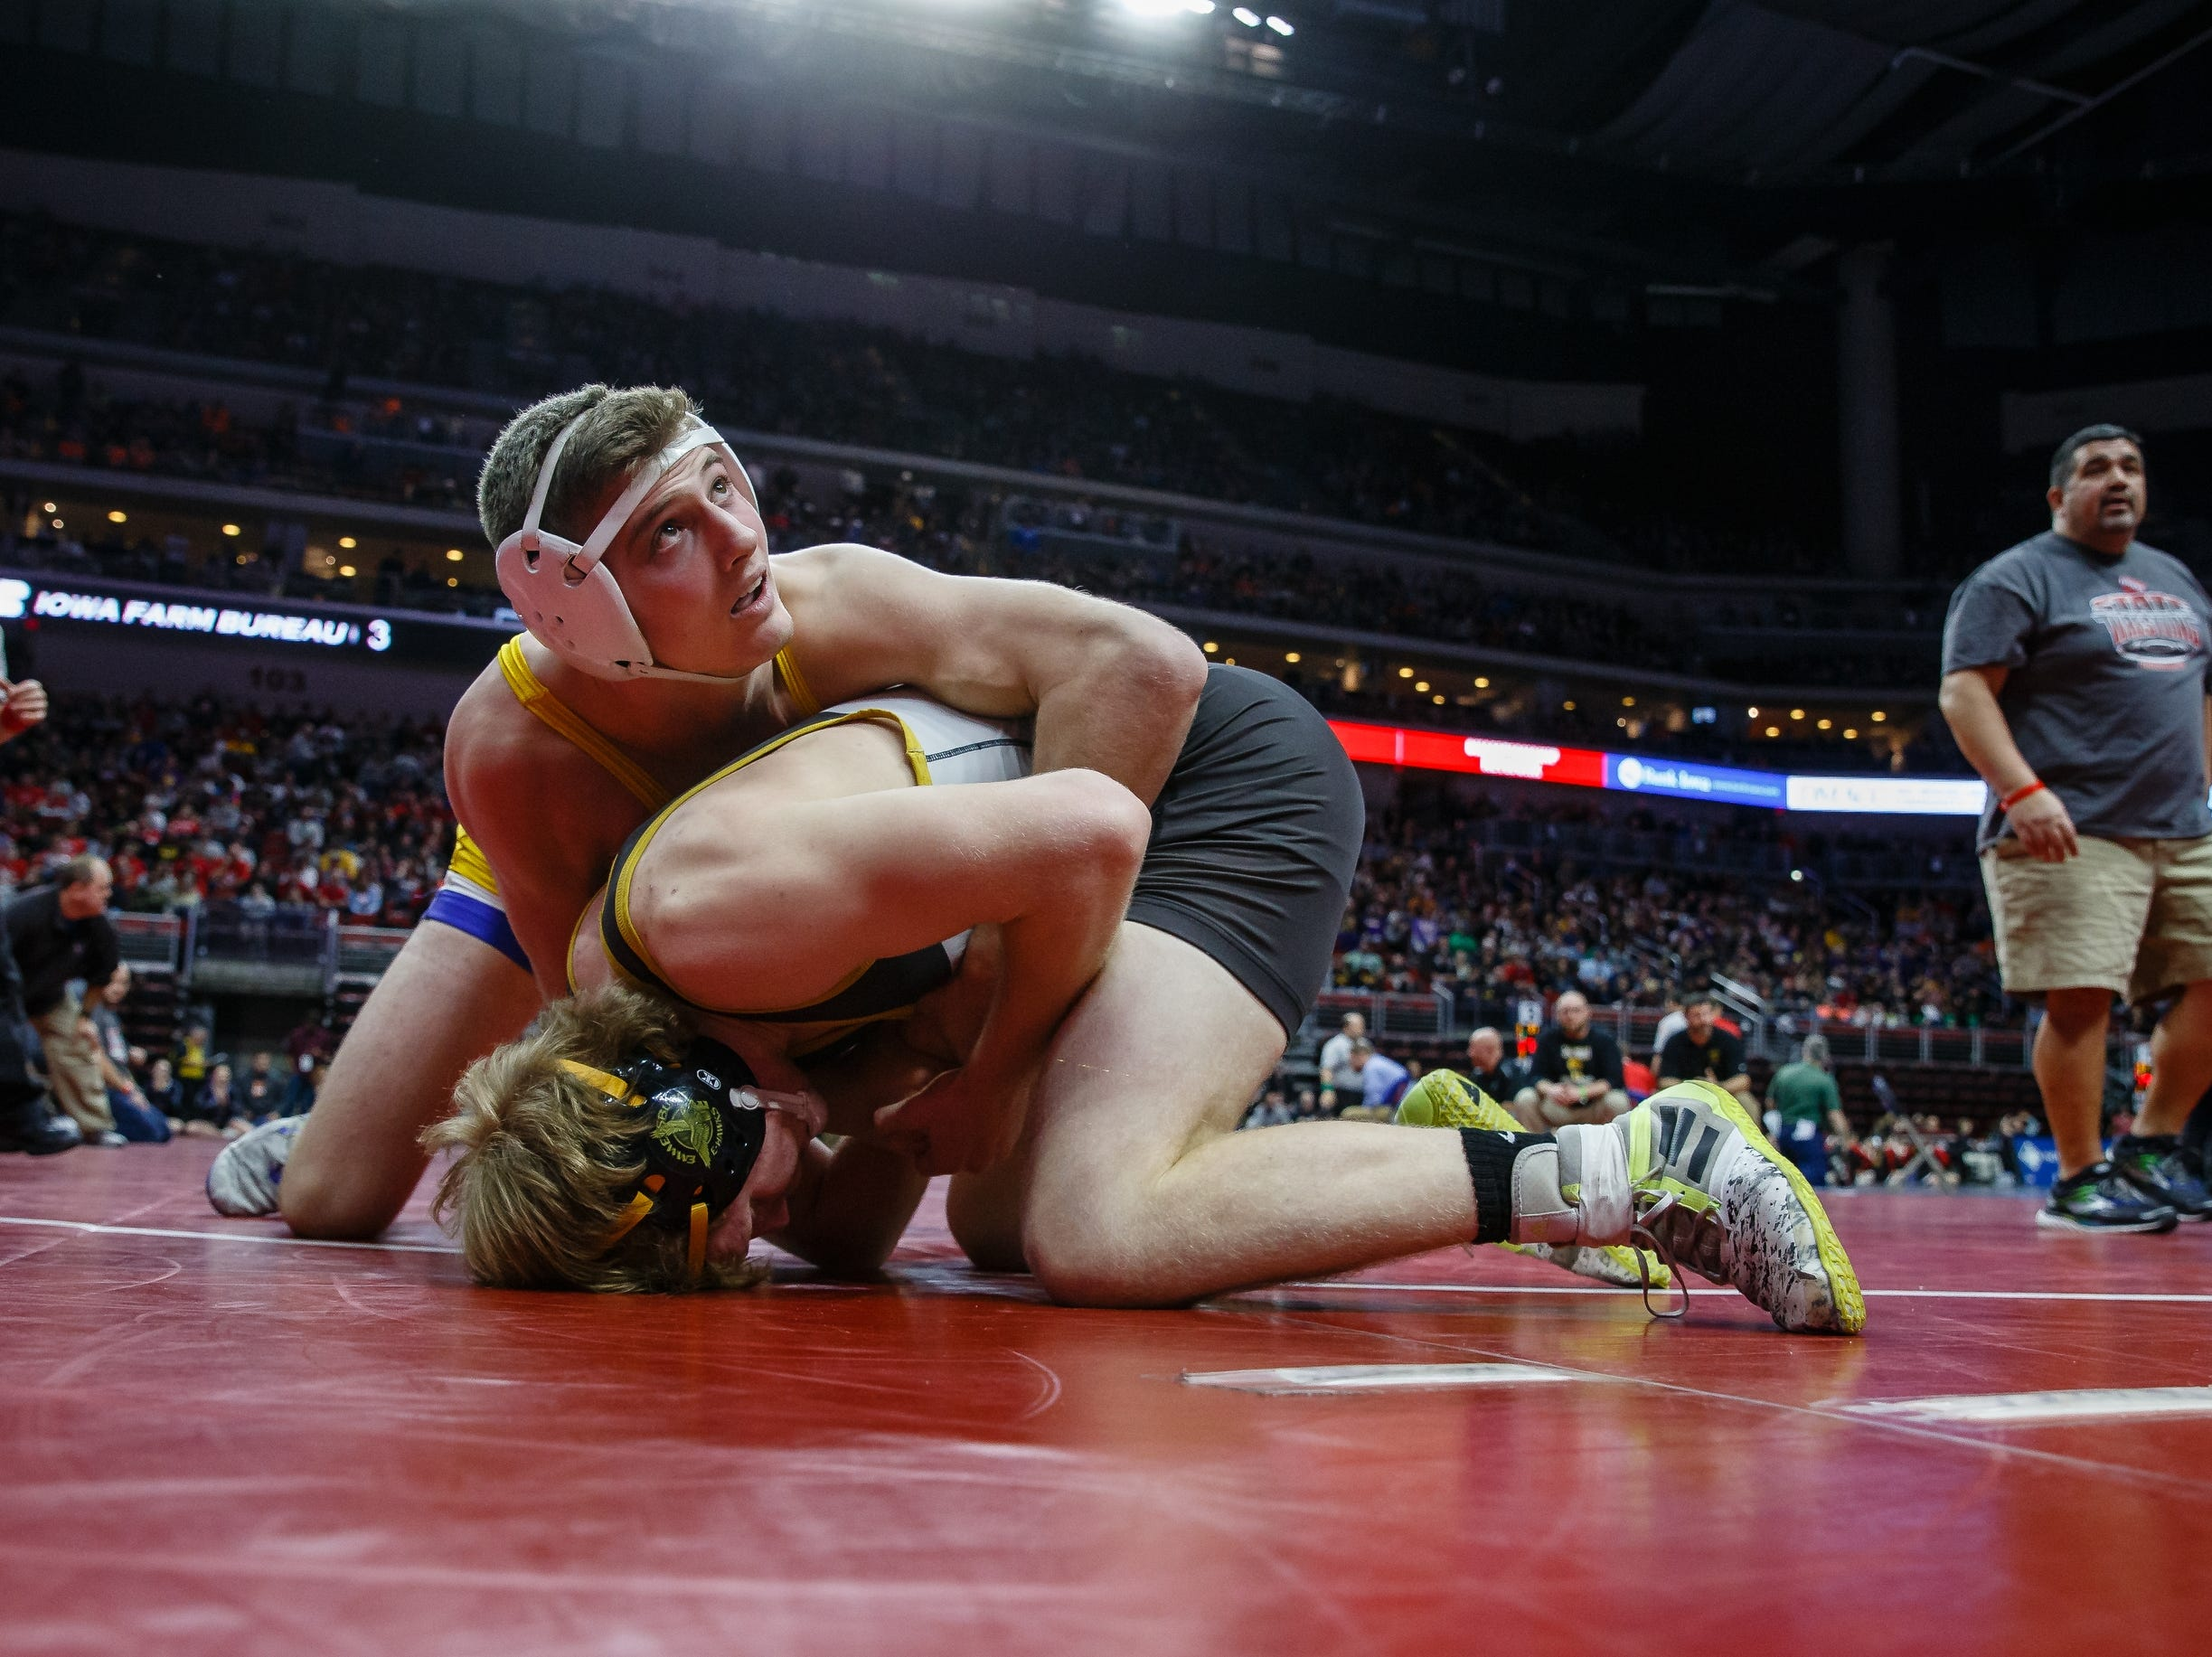 Mason Griffin of Emmetsburg wrestles Carson Tenold of Don Bosco during their class 1A 160 pound state championship semi-final match on Friday, Feb. 15, 2019 in Des Moines. Tenold moves onto the finals with a 10-5 decision.